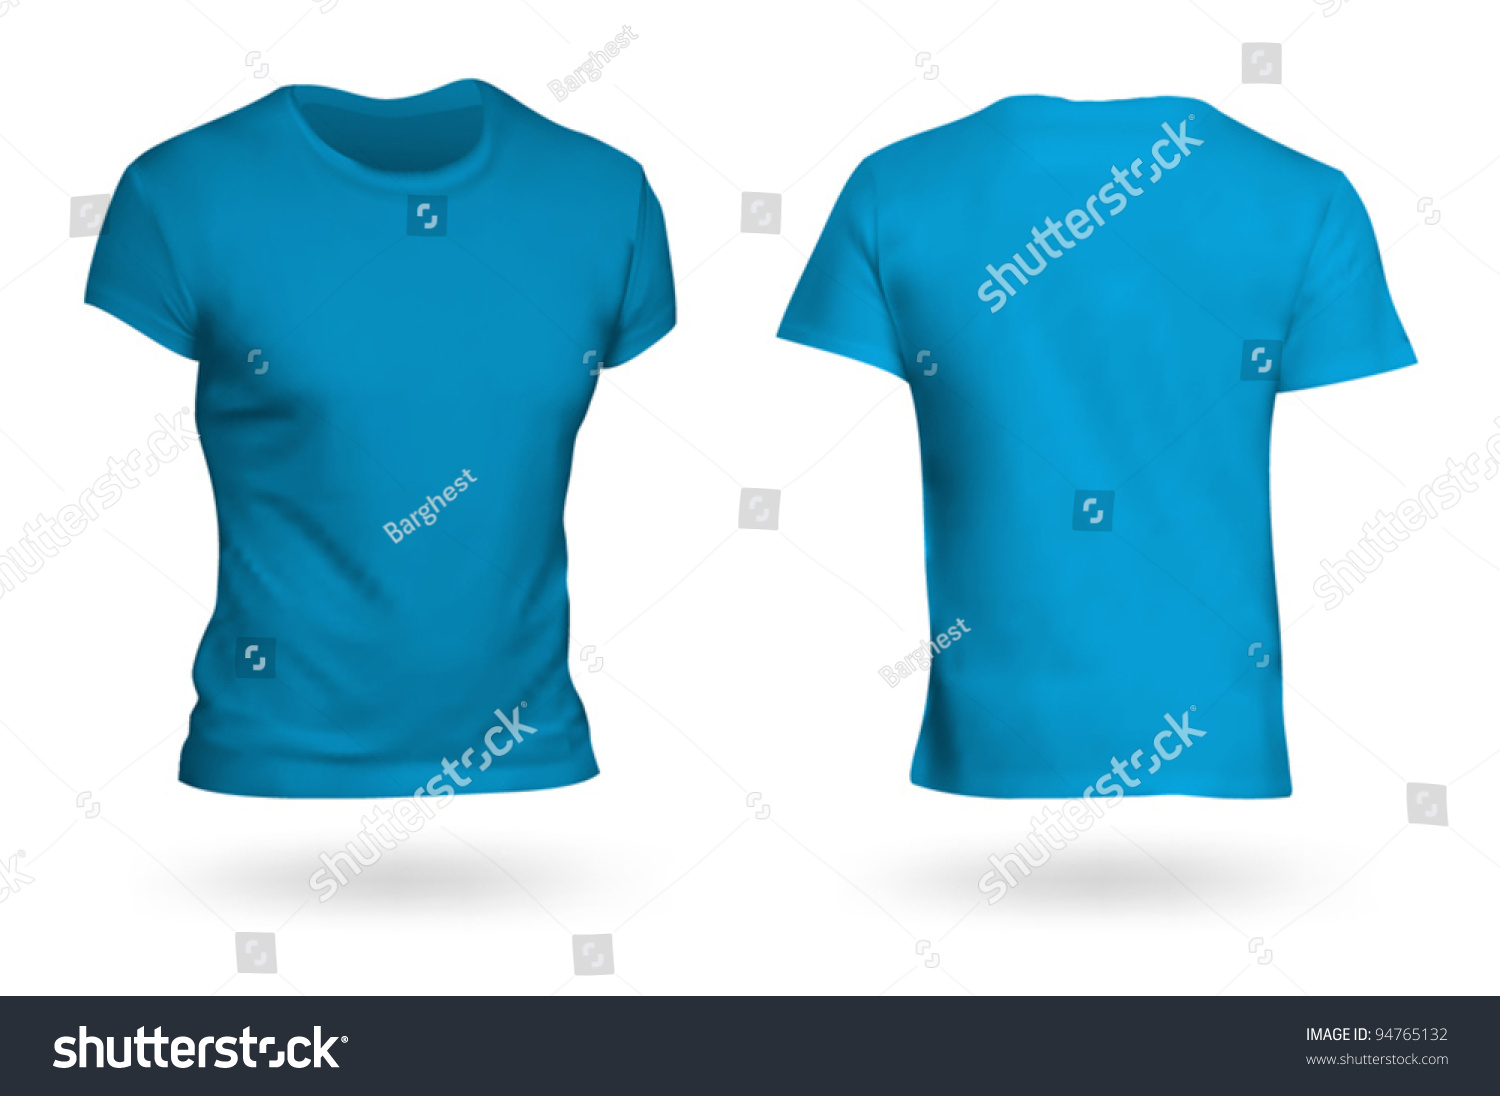 Blue t shirt template photo realistic mesh design for Blue t shirt template